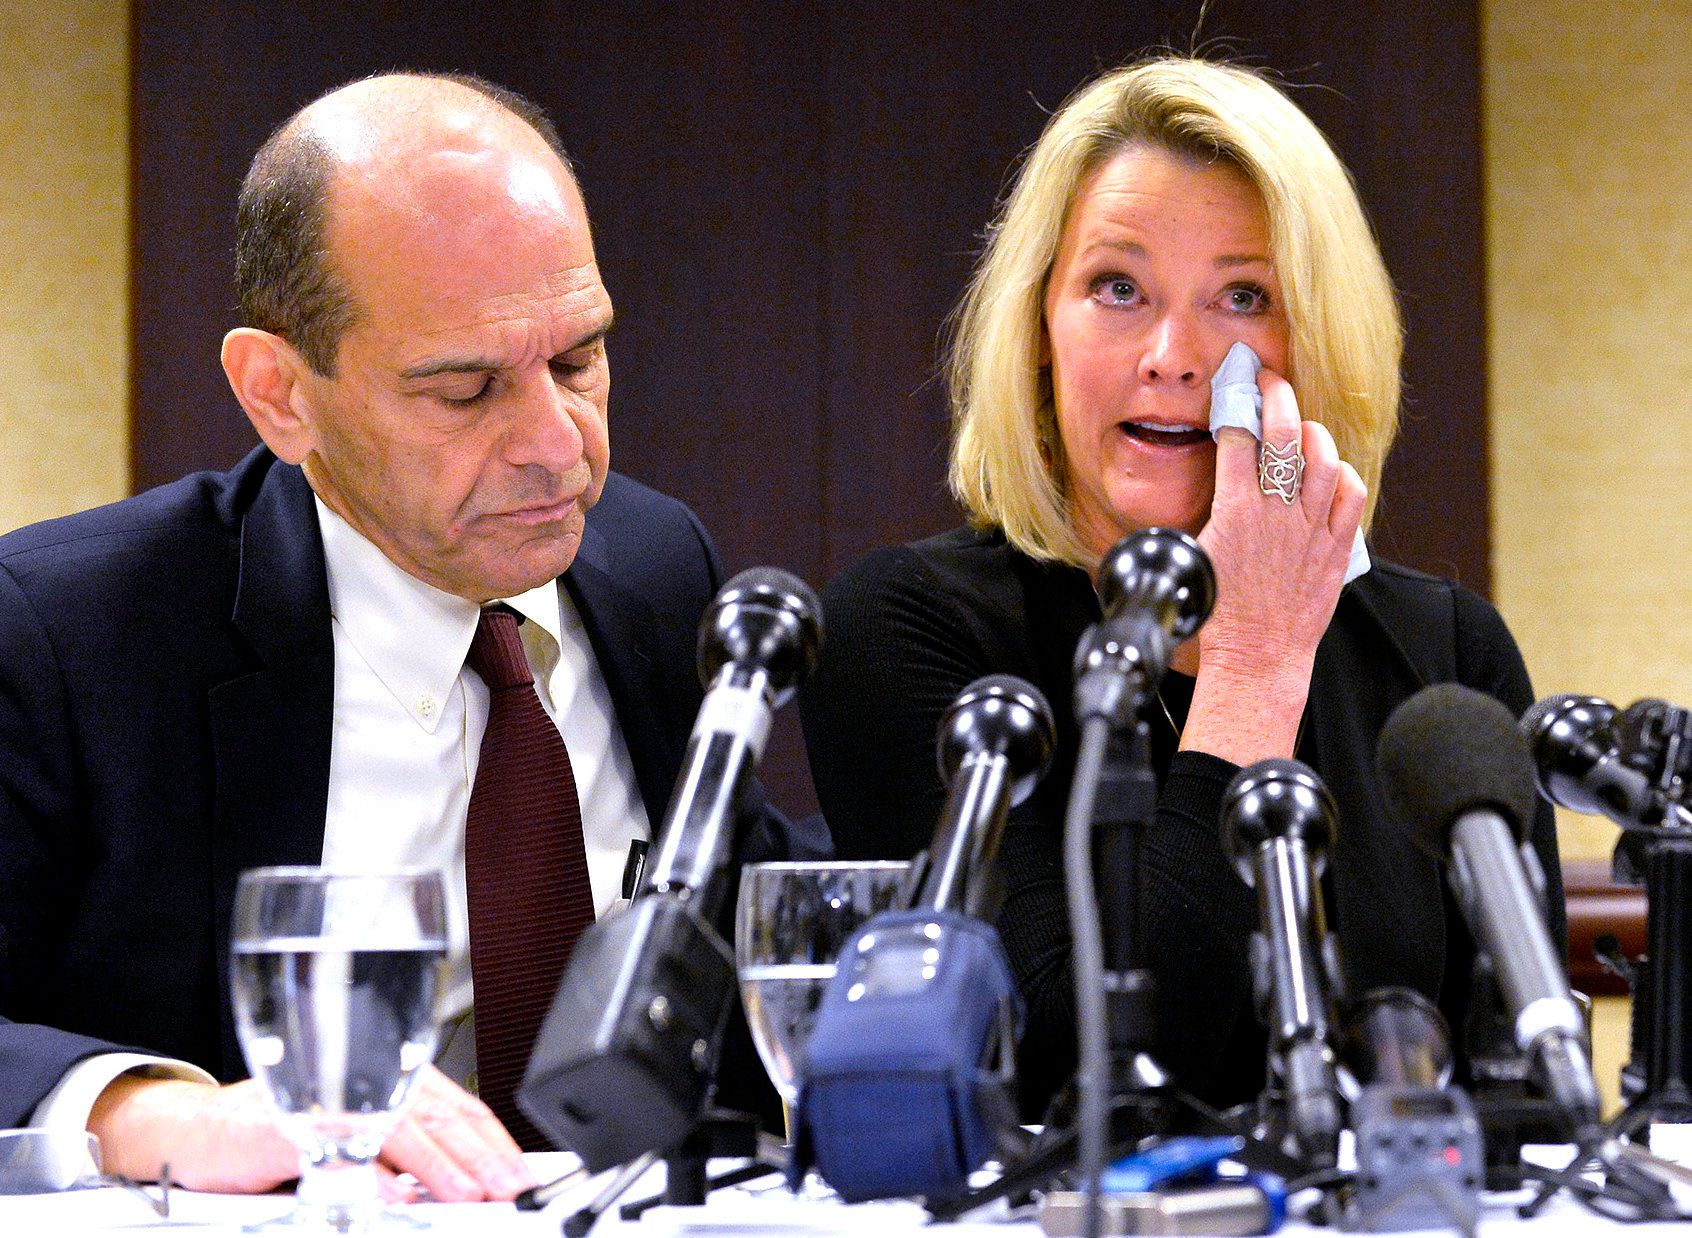 Former Boston news anchor Heather Unruh sits with her attorney Mitchell Garabedian at a press conference in Boston November 8